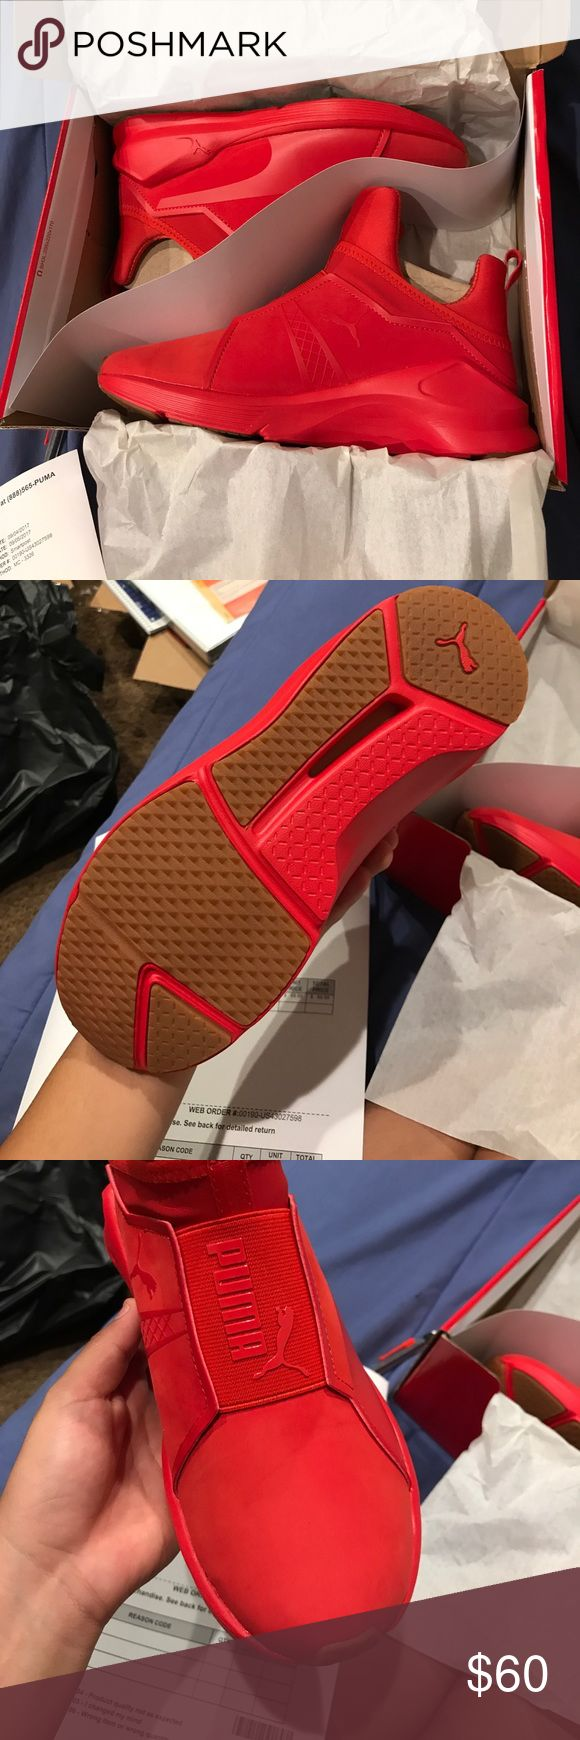 Puma fierce red 6 Women Brand new Red Fierce pumas size 6 their 100% authentic I have a pic of the receipt. I'm selling them cheaper than the actual Puma website. don't forget to check out the rest of my closet and to bundle it'll be cheaper.  Puma Shoes